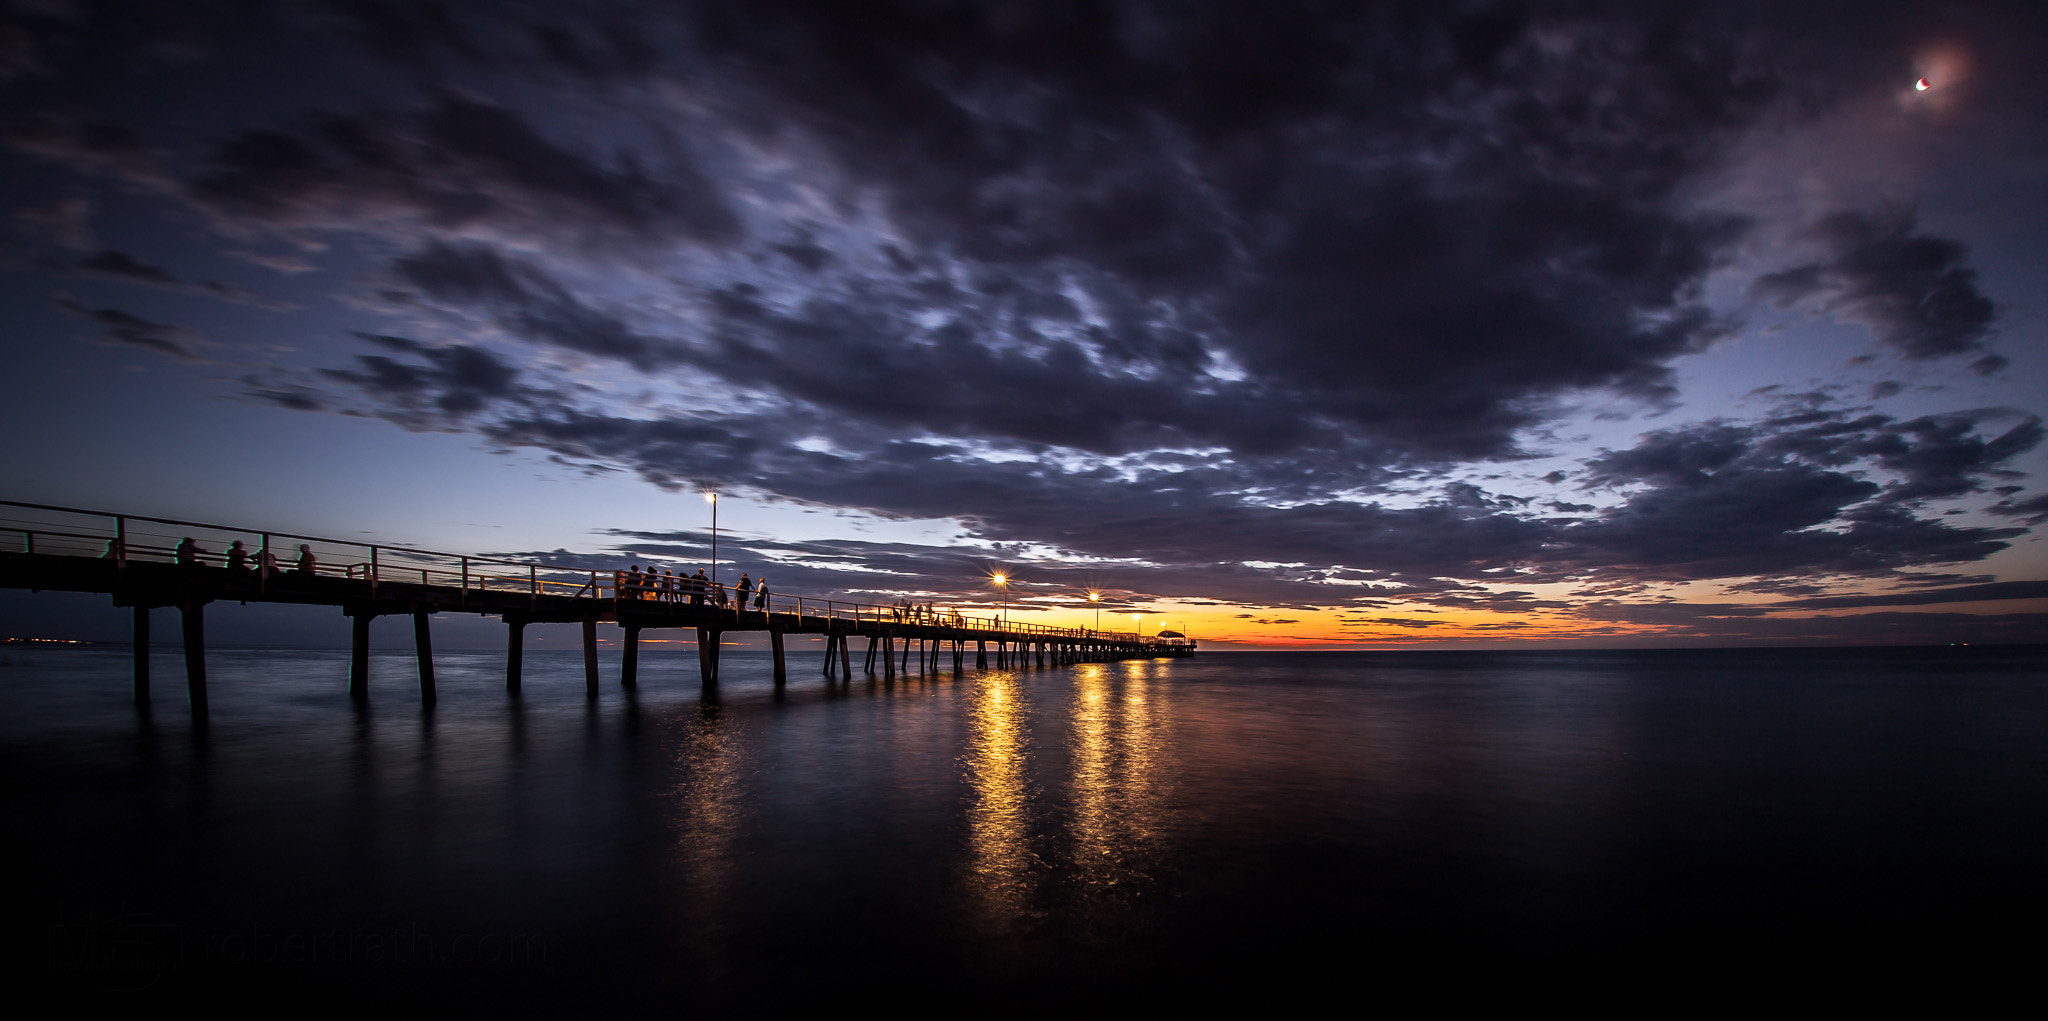 Photograph Day 384, Afterglow by Robert Rath on 500px